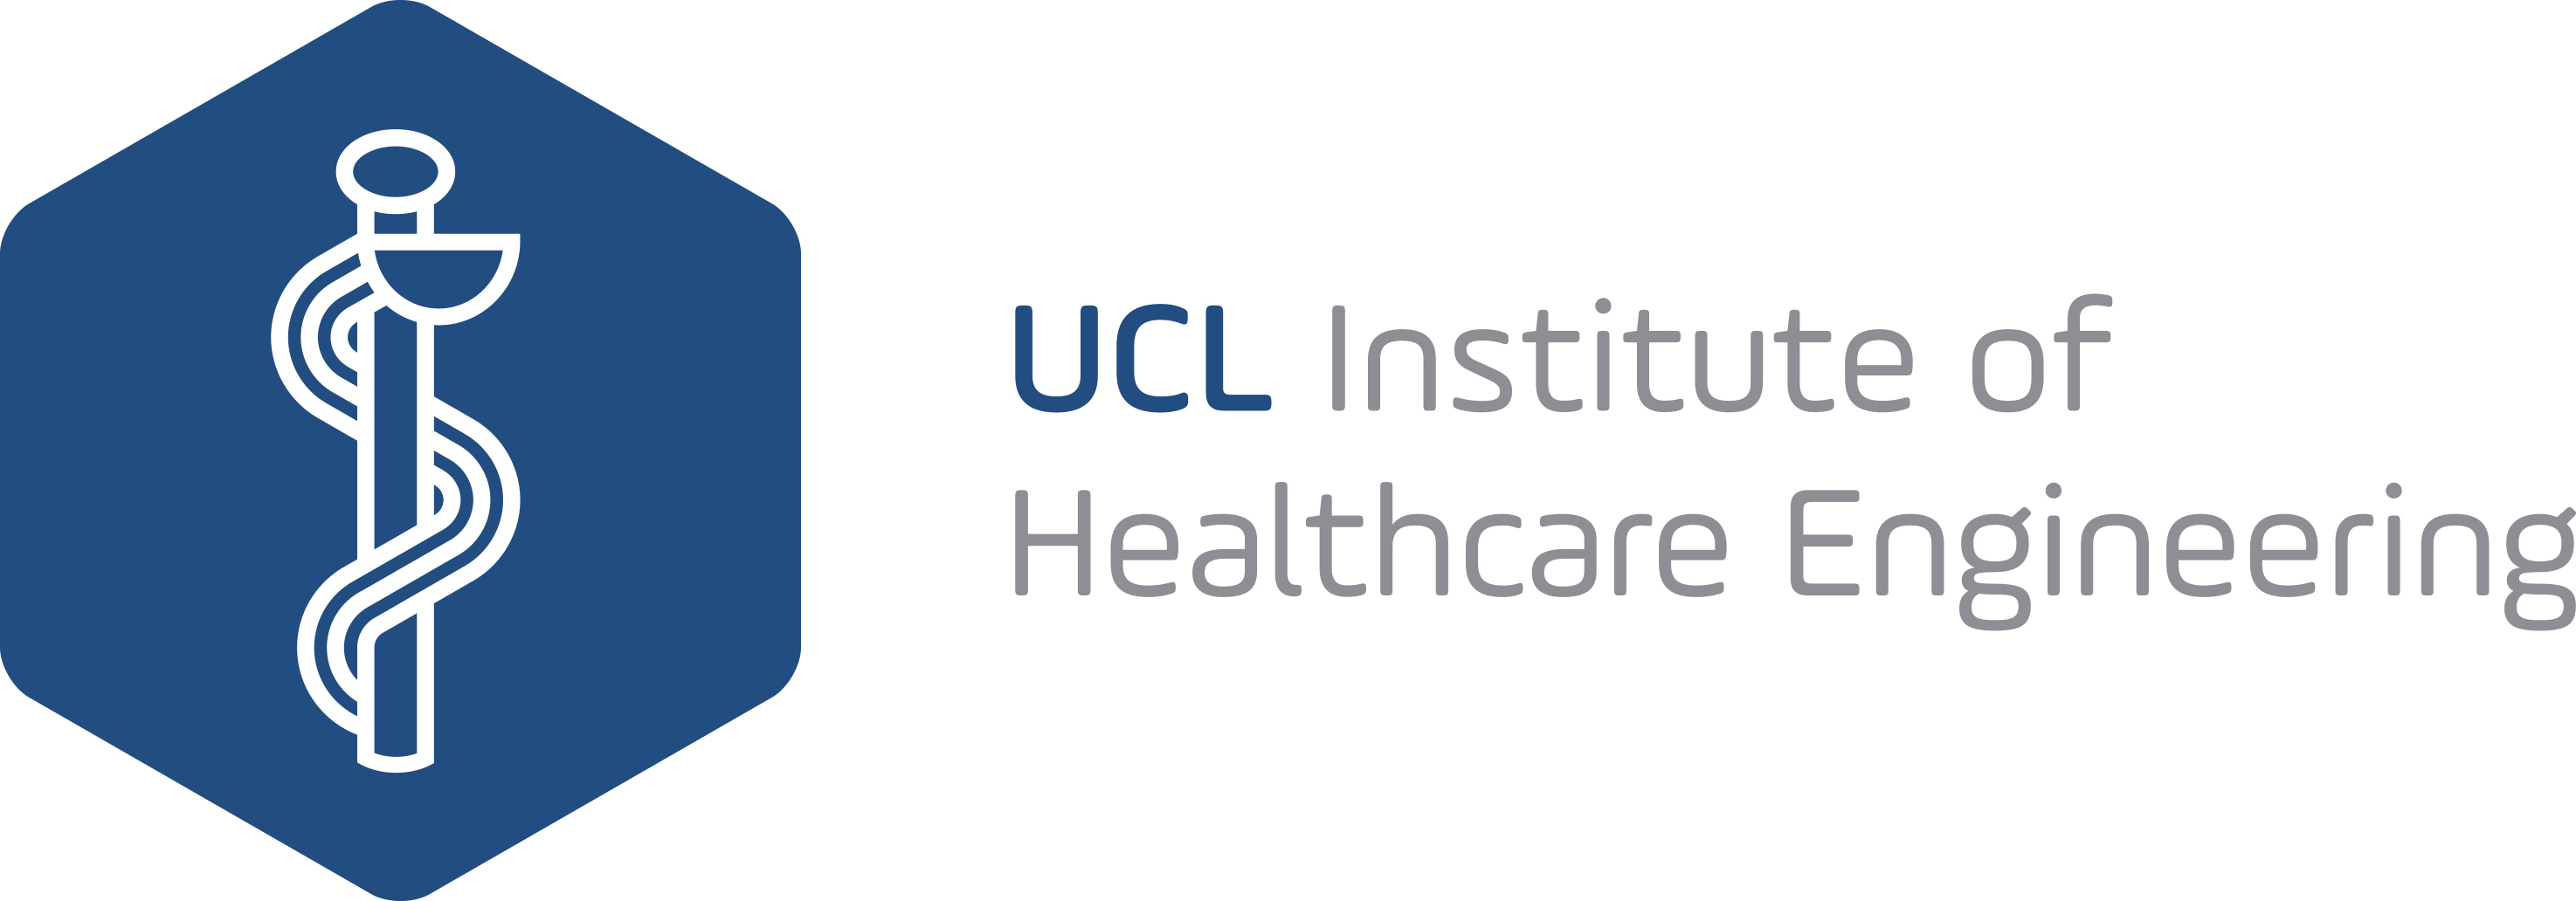 UCL Institute of Healthcare Engineering